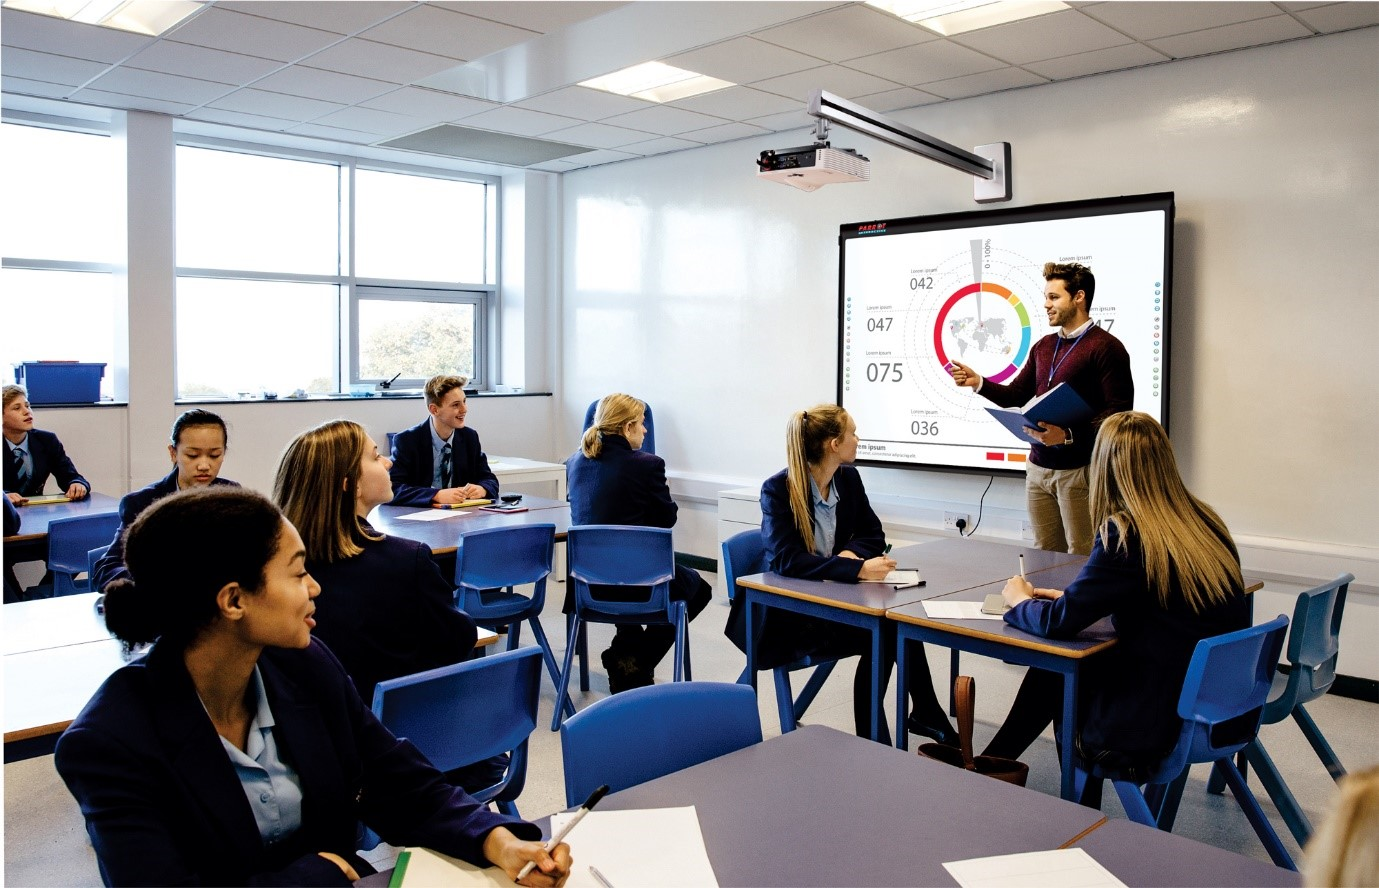 Interactive Whiteboard in Classroom with a Short Throw Projector